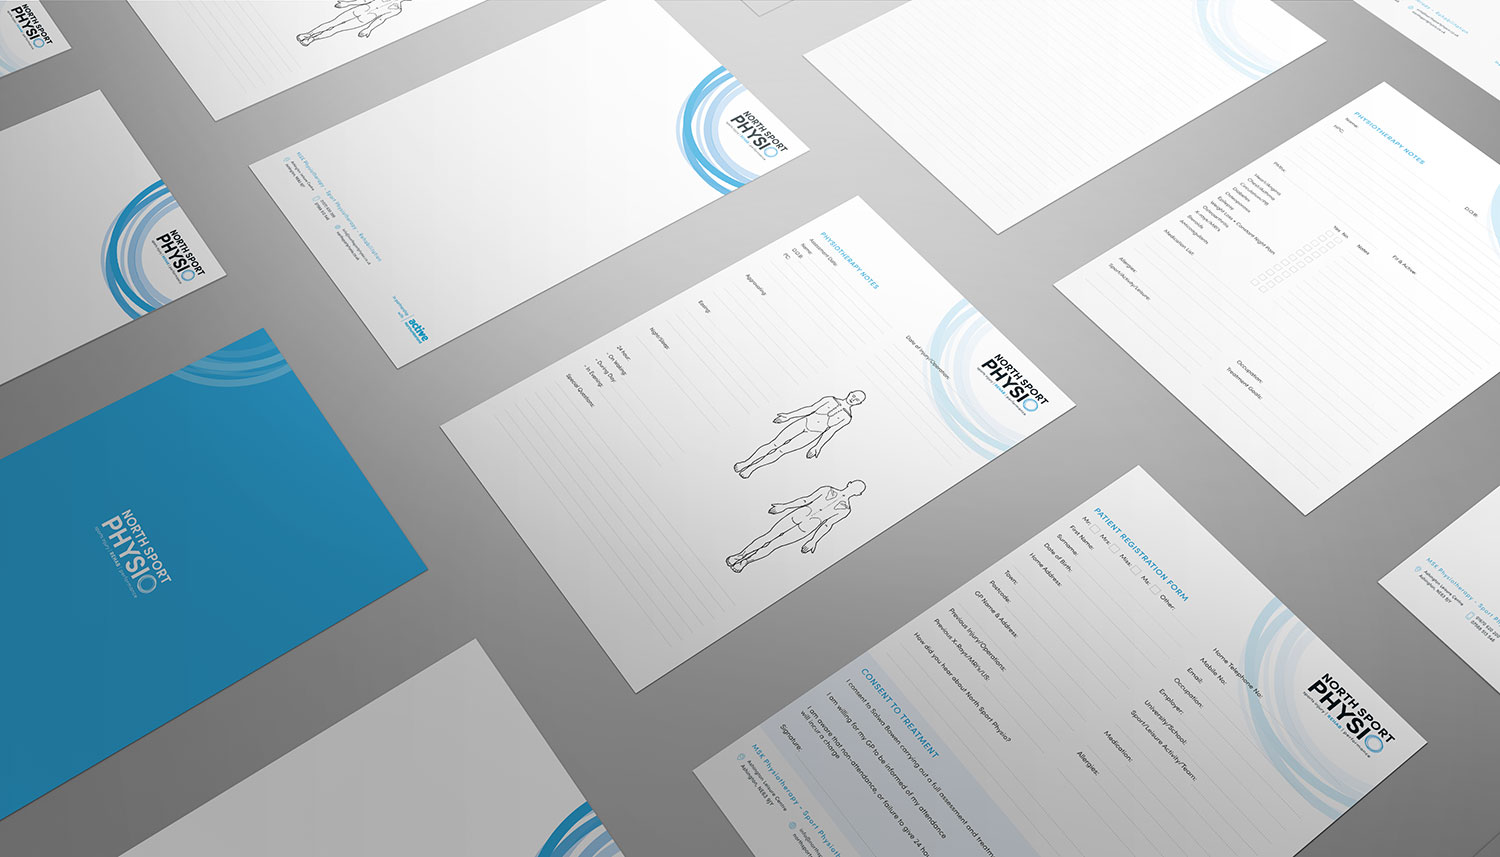 NSP stationery and forms